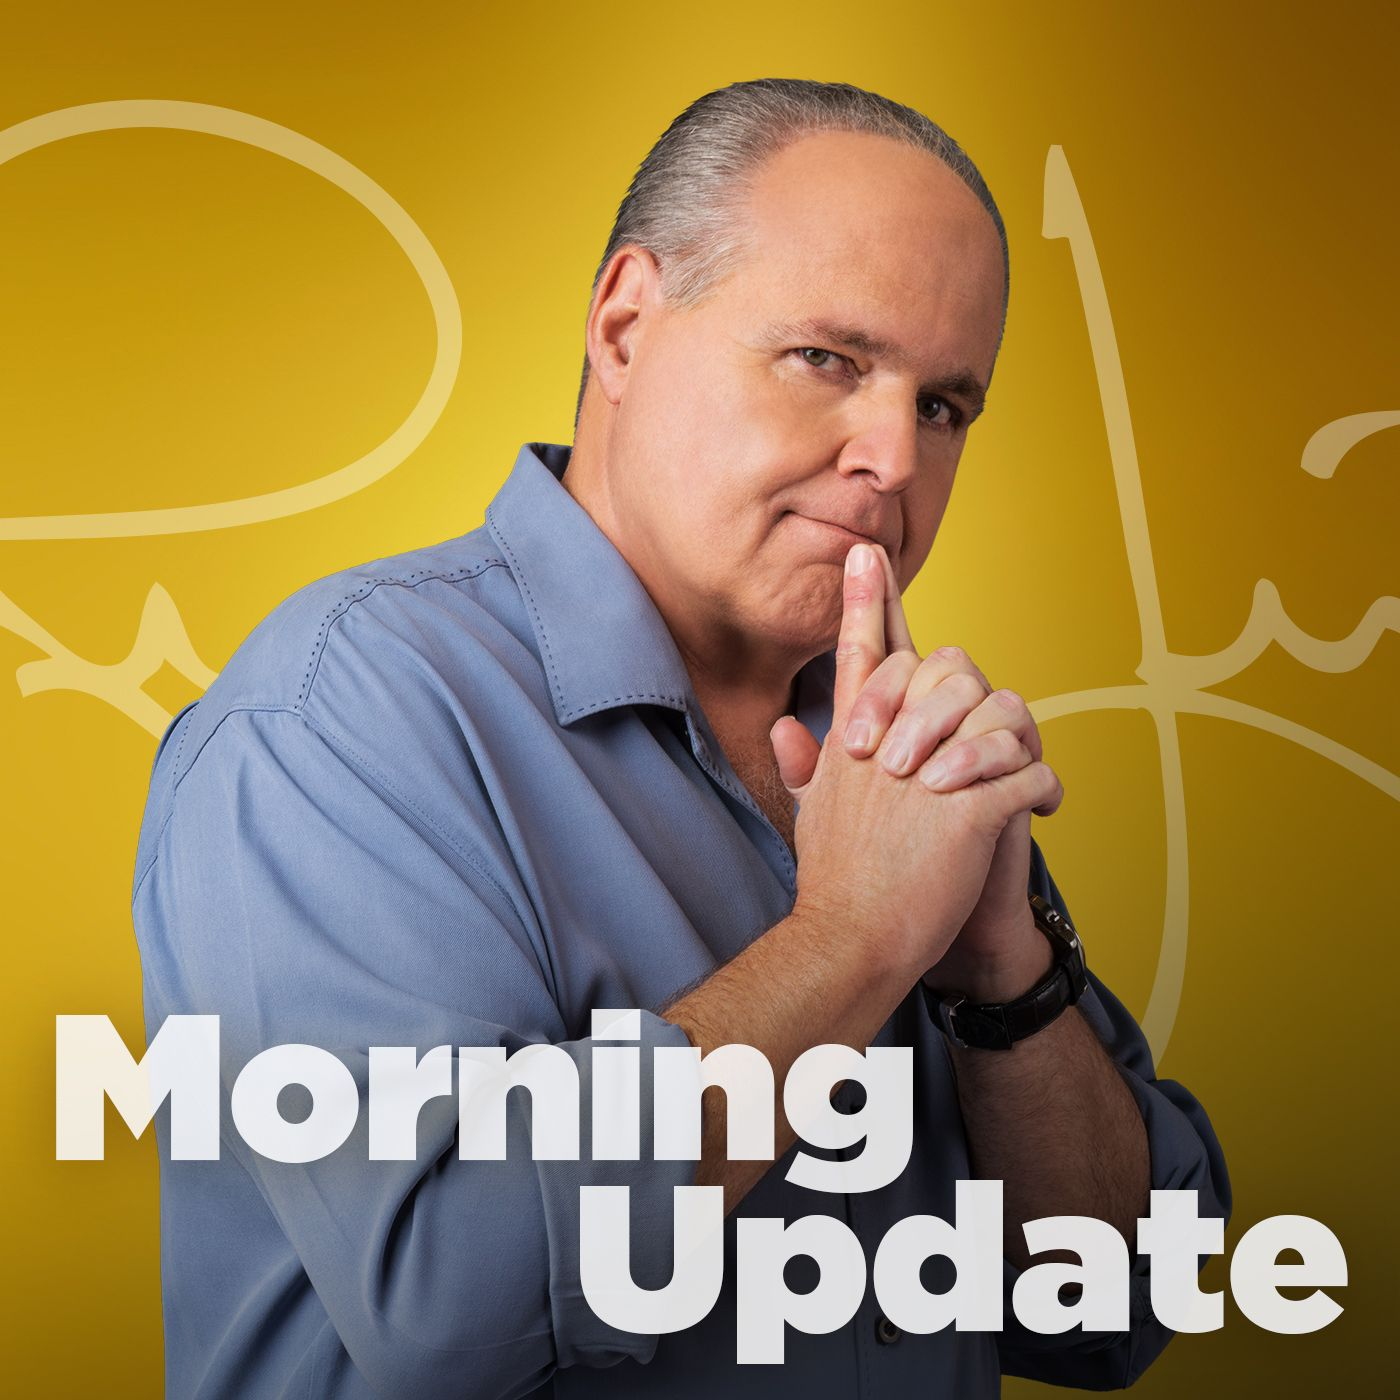 Rush Limbaugh Jun 09, 2020